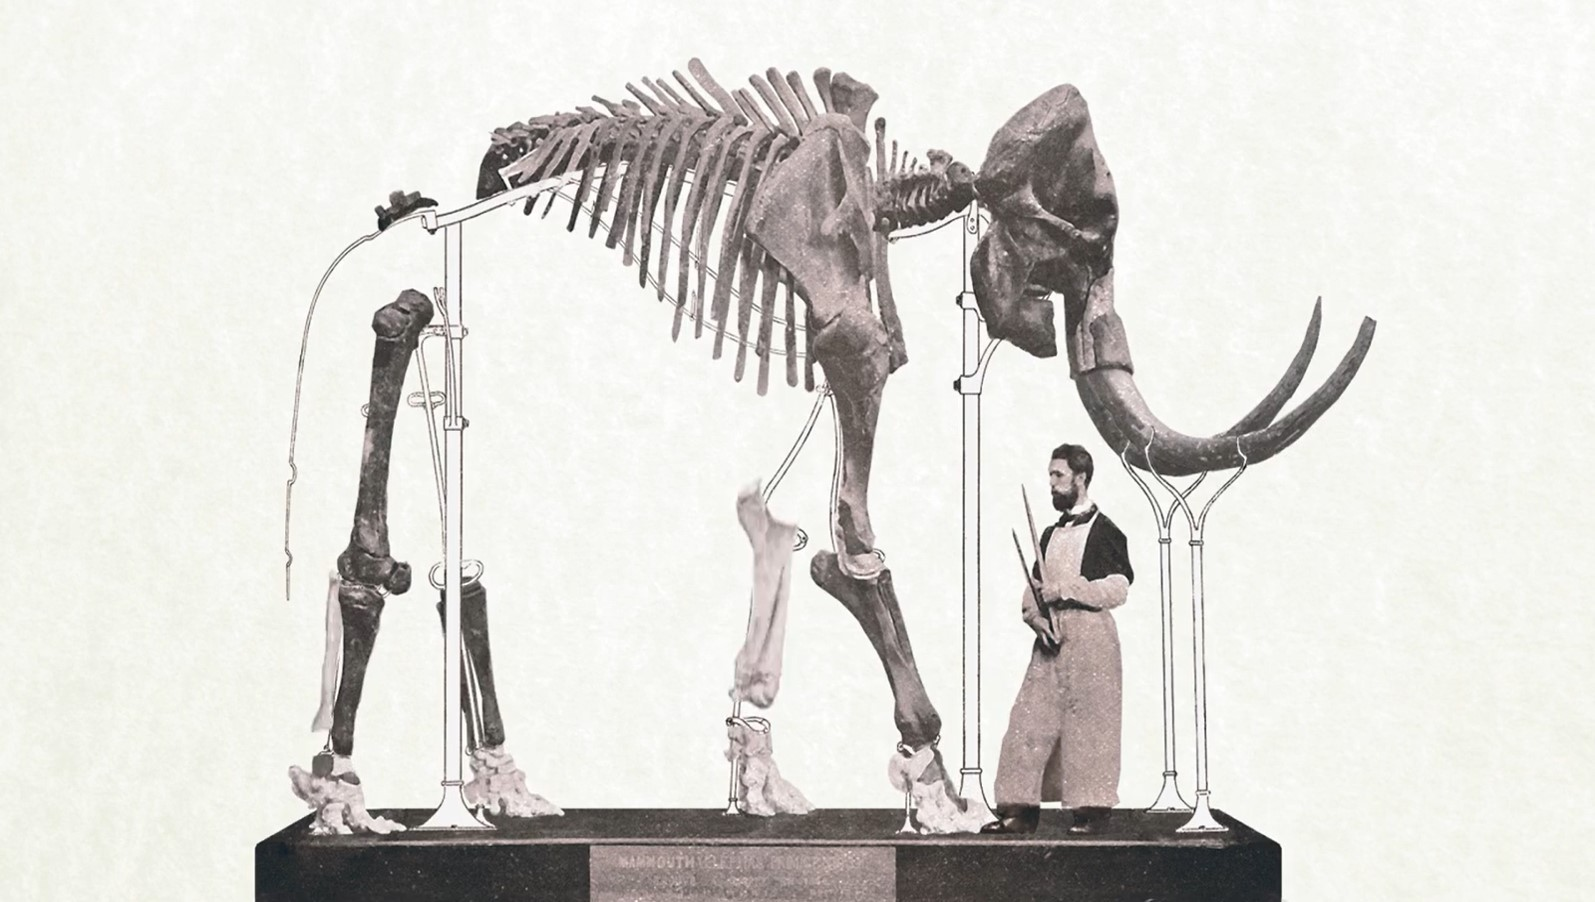 The original Lier mammoth at the Museum of Natural Sciences. Image via Museum of Natural Sciences.